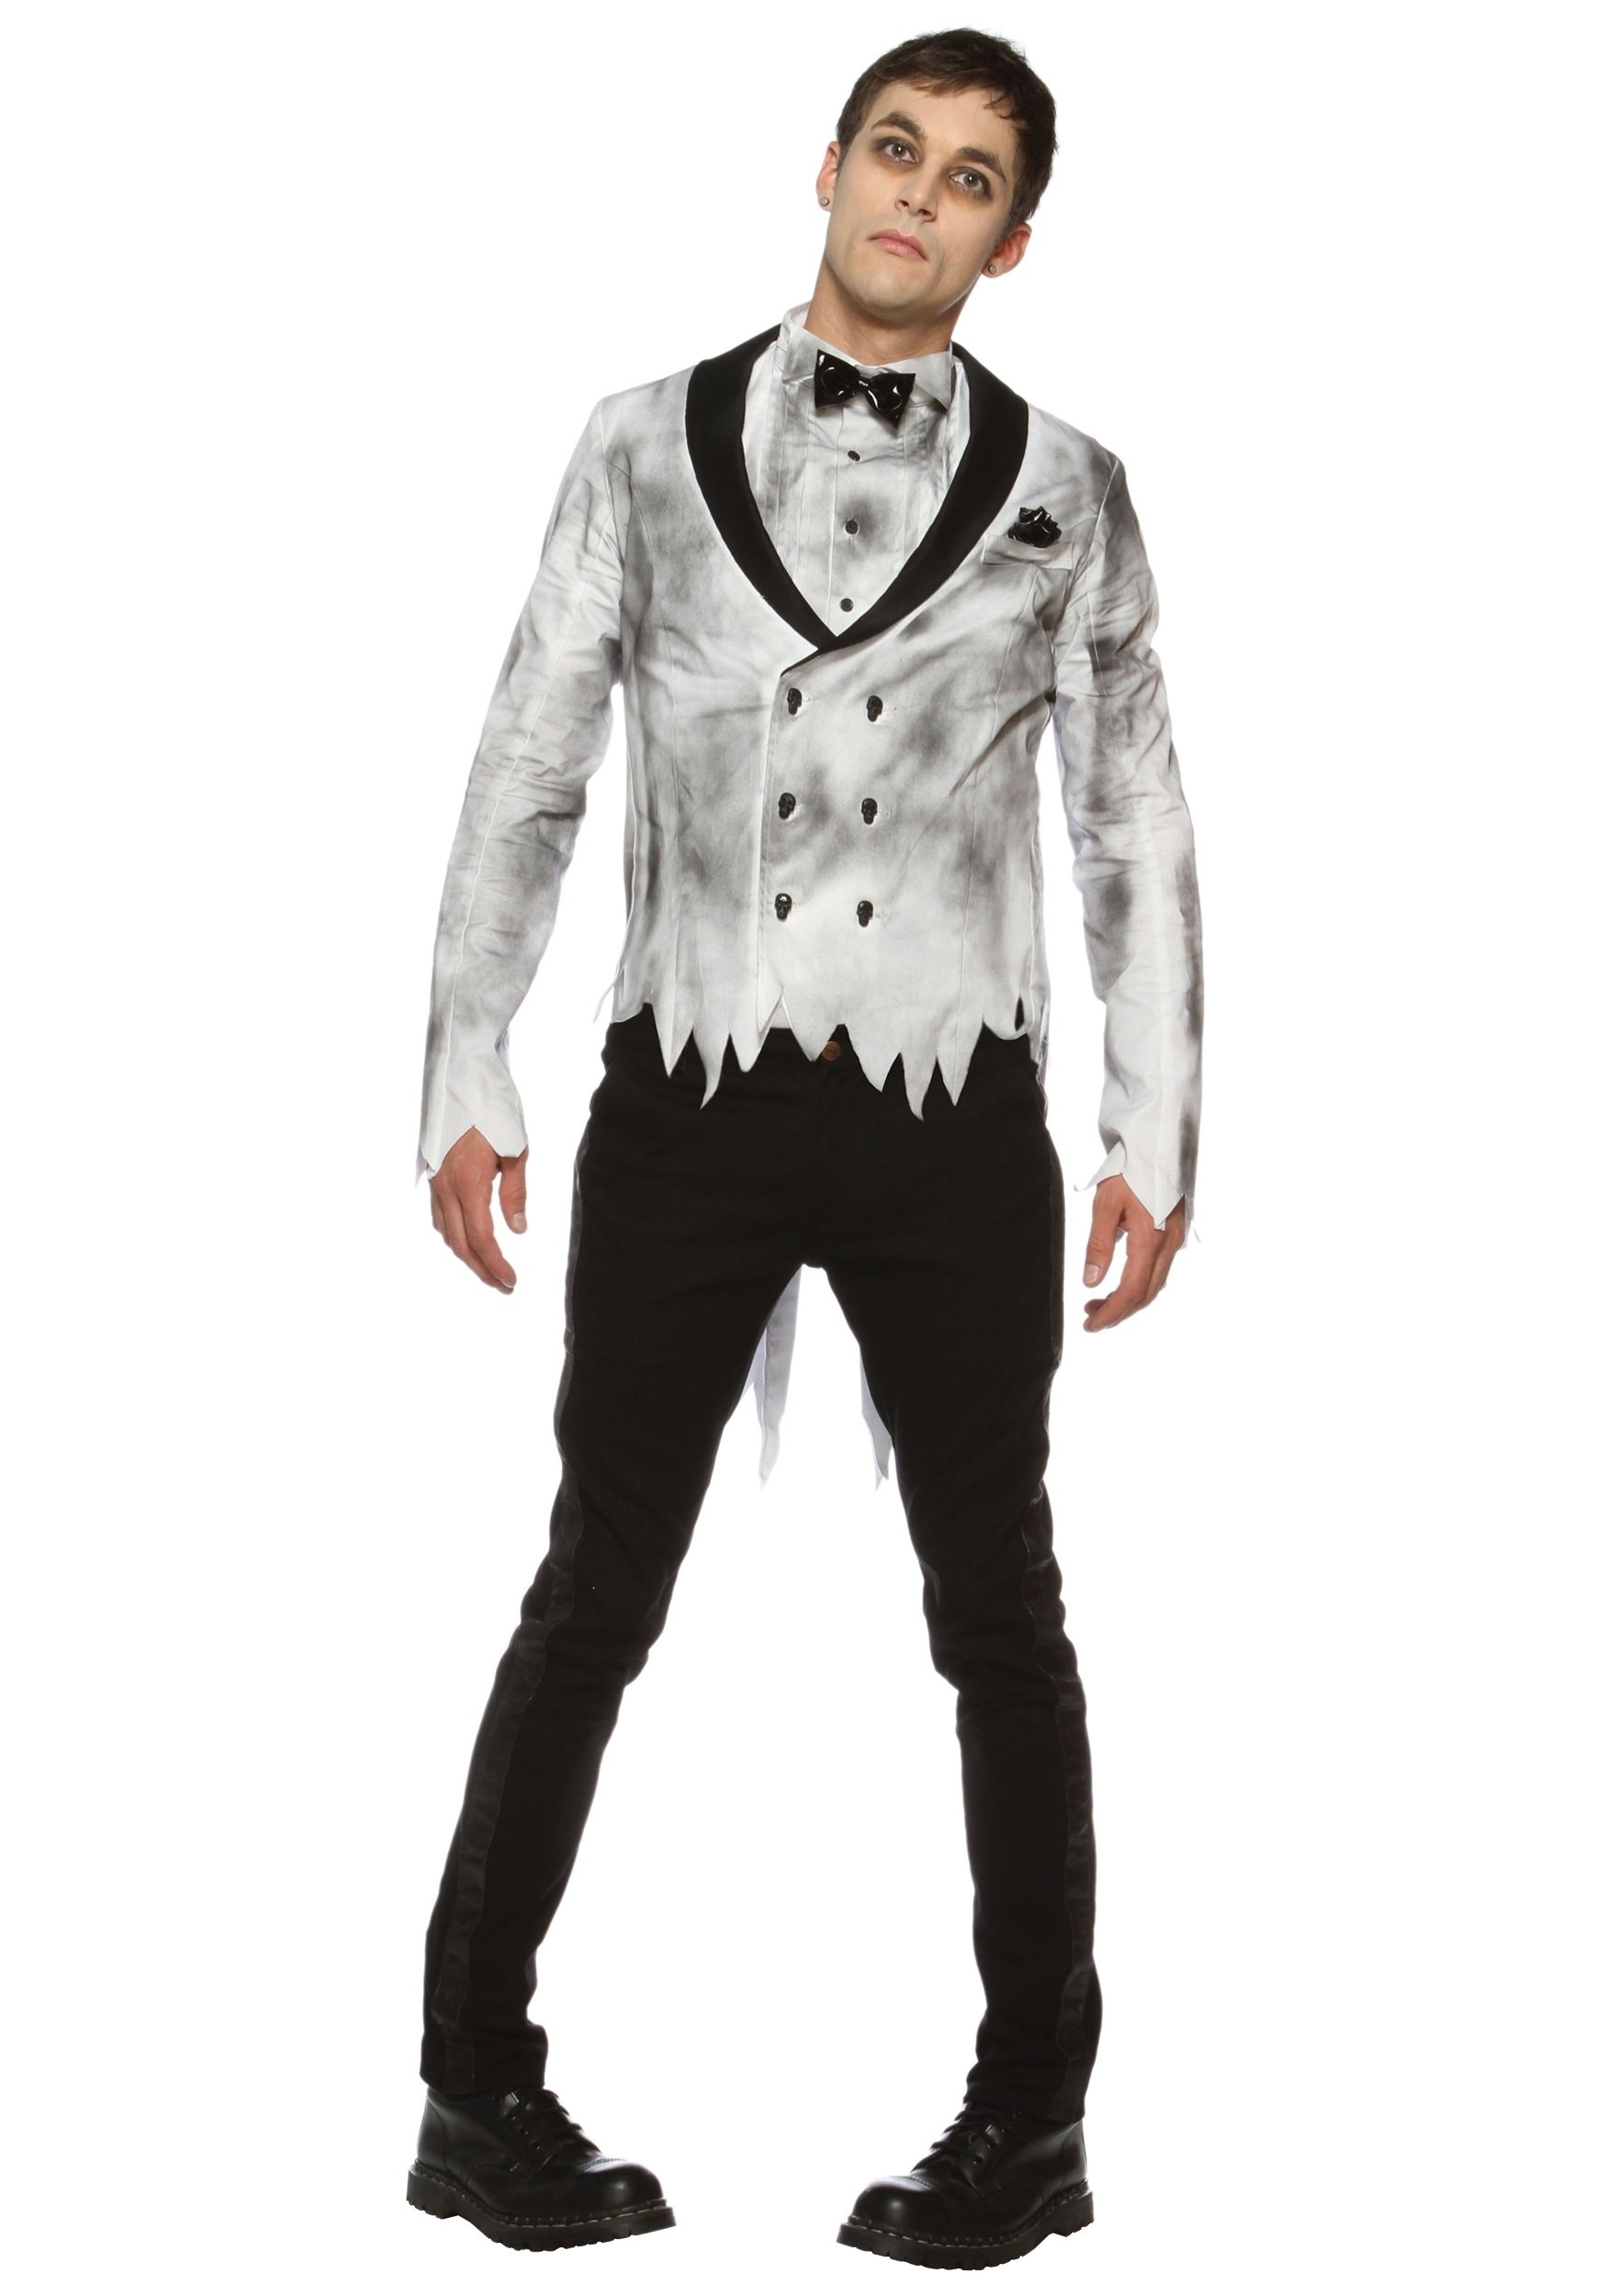 10 Fashionable Zombie Costume Ideas For Men zombie groom costume 2020